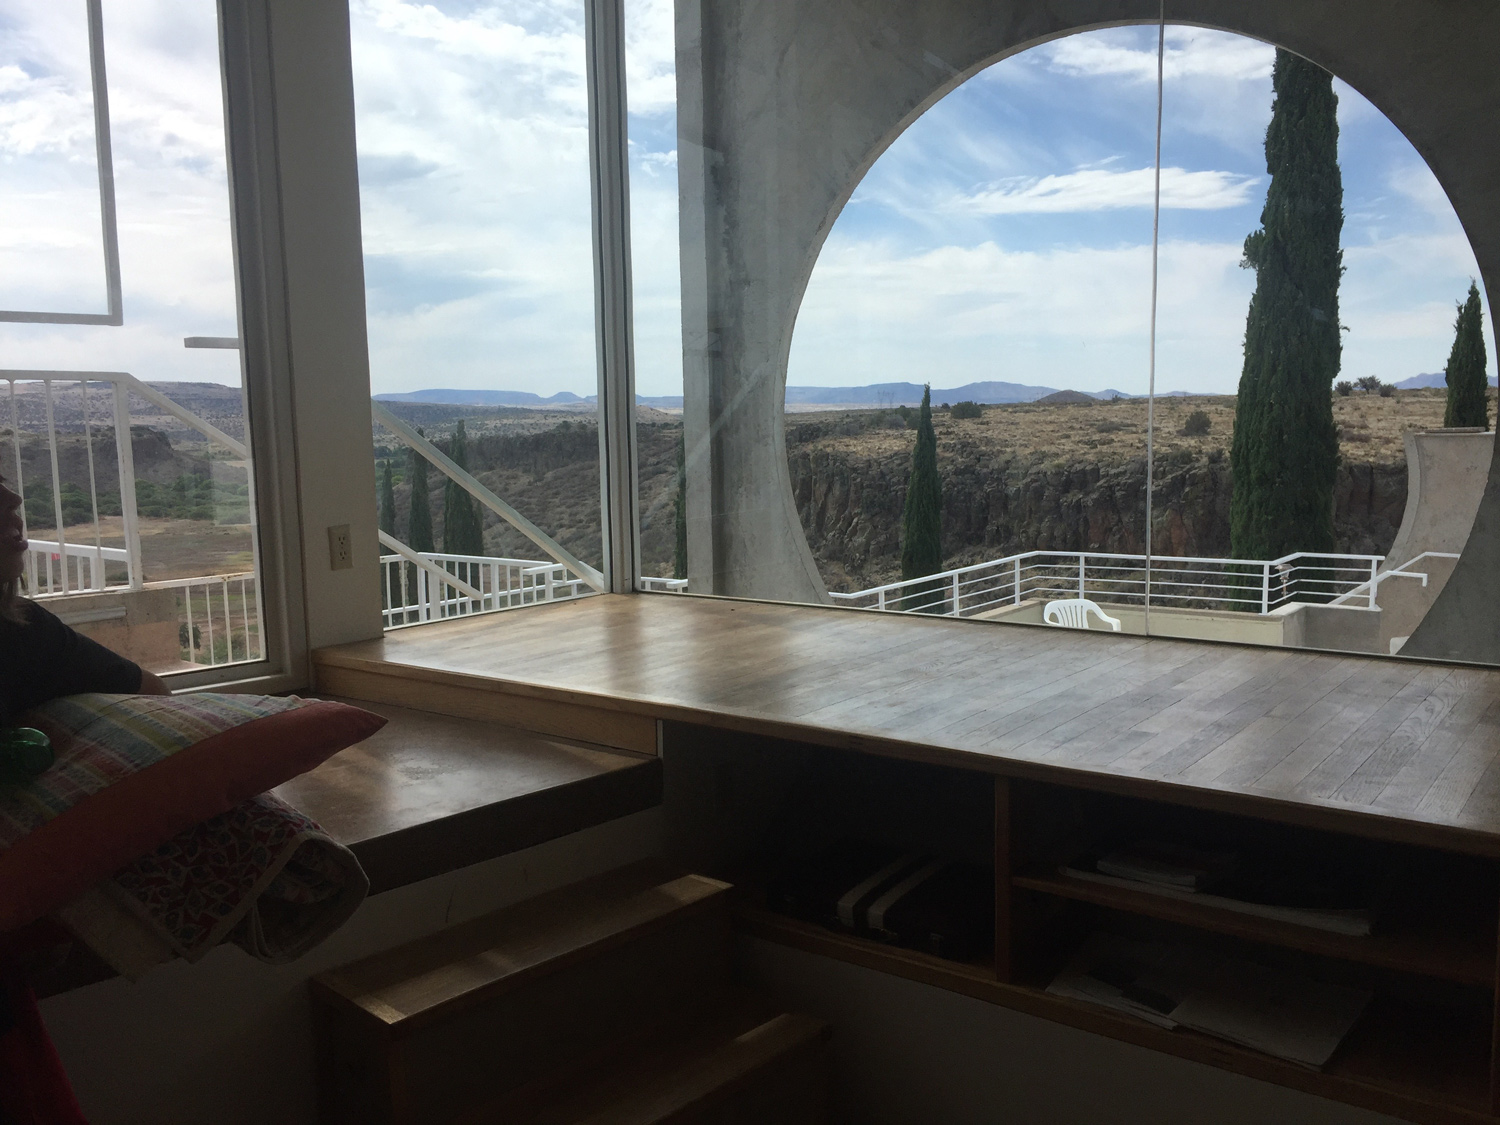 The Sky Suite at Arcosanti with an amazing view looking out over Mayer, Arizona.